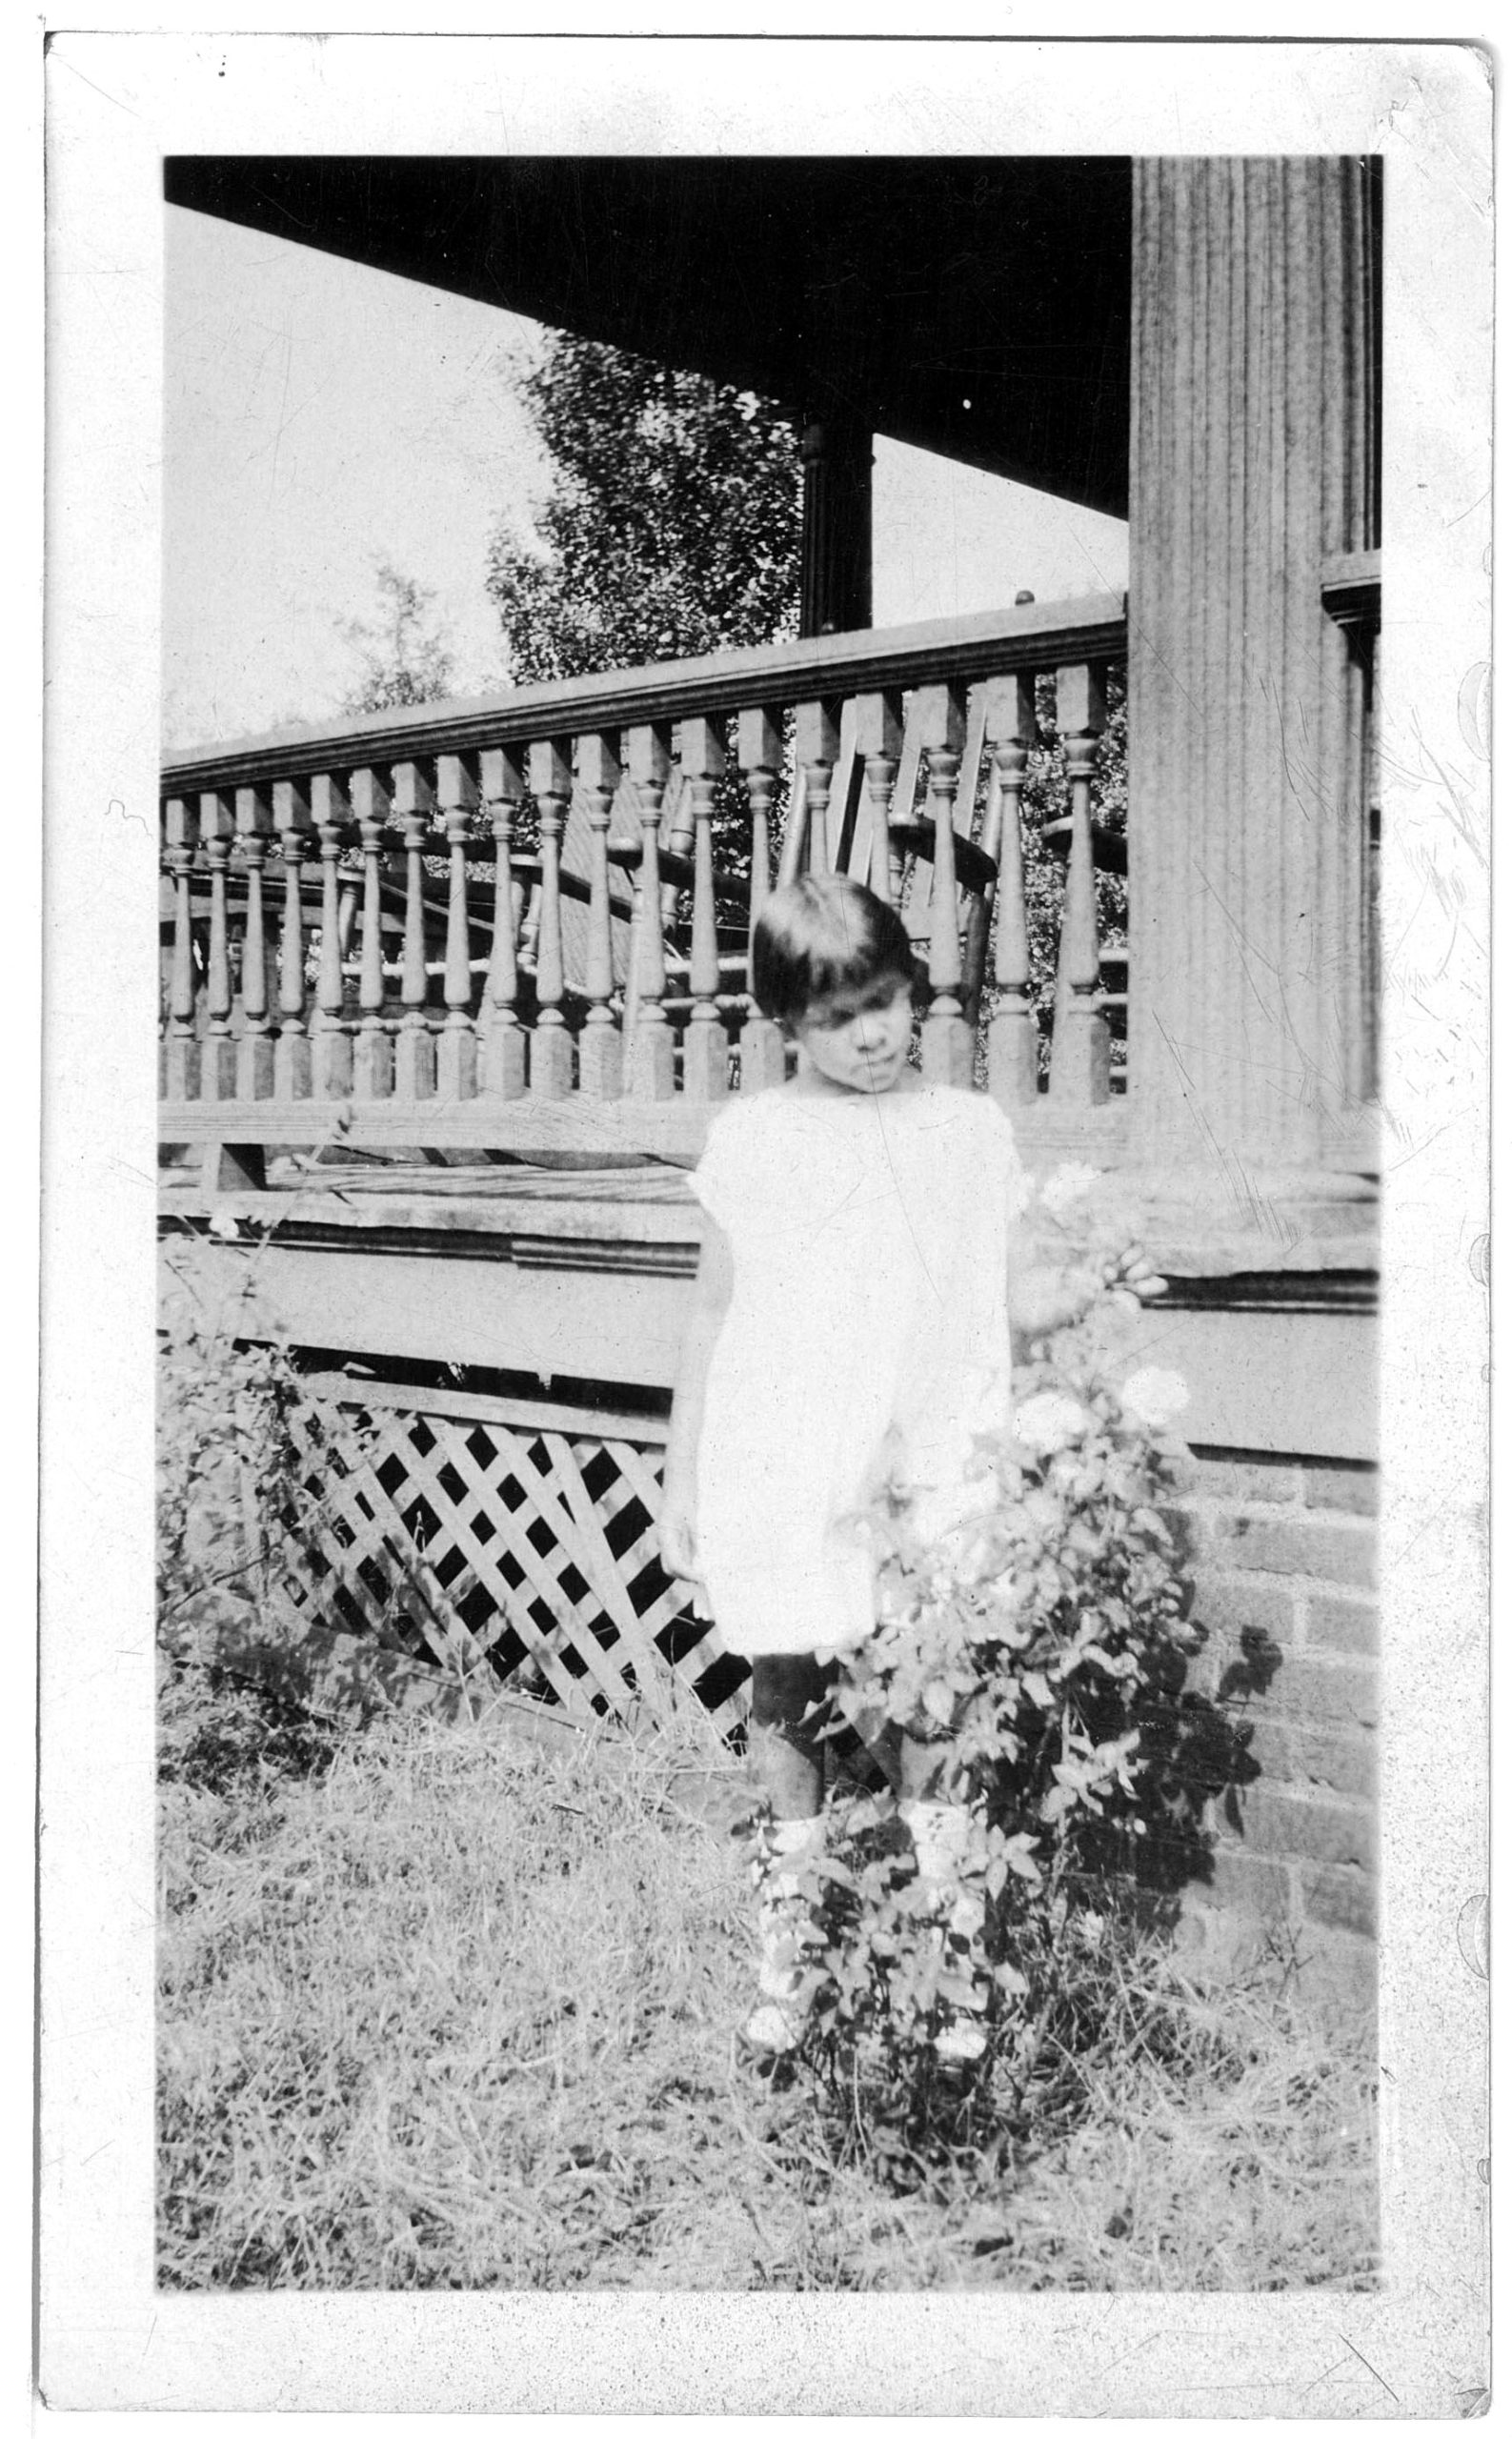 Grace Towns Hamilton, 1959, Grace Towns Hamilton papers